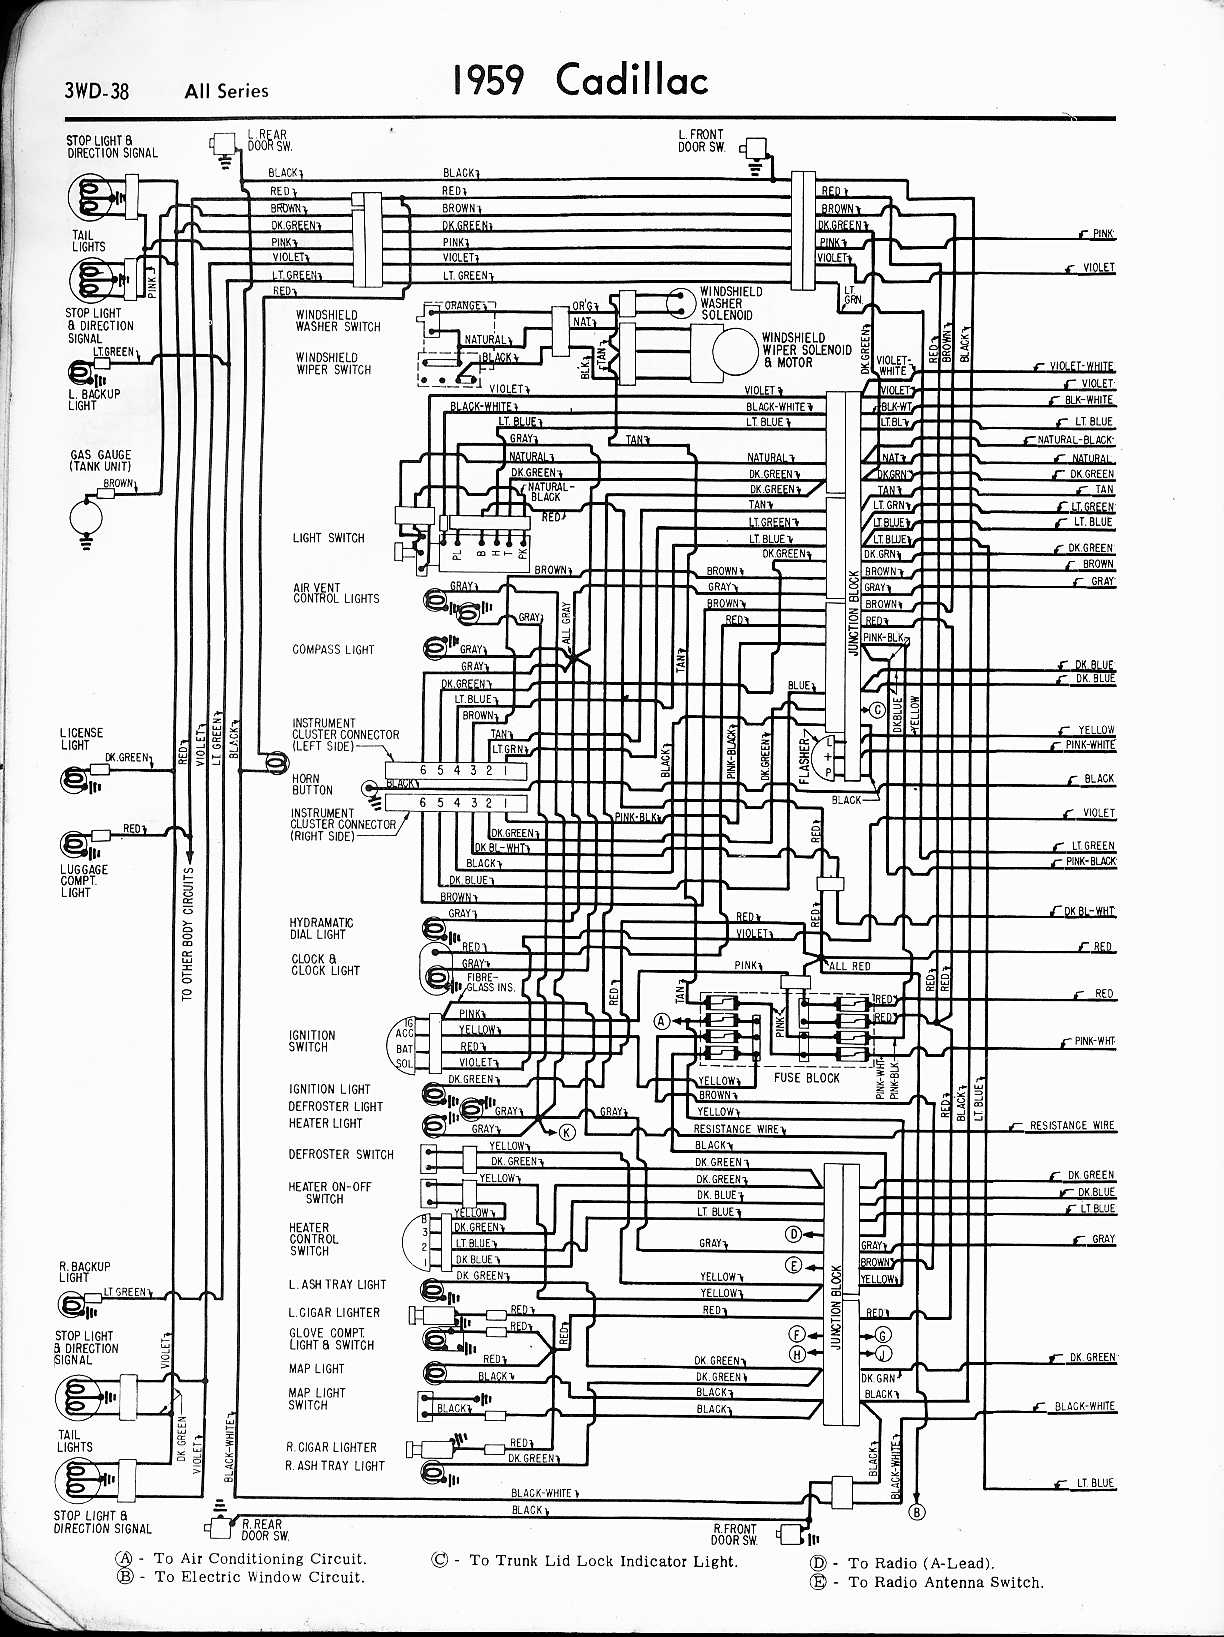 1956 Cadillac Wiring Diagram Free For You Hard A Stove Download Schematic Diagrams 1957 1965 Rh Oldcarmanualproject Com Chevrolet